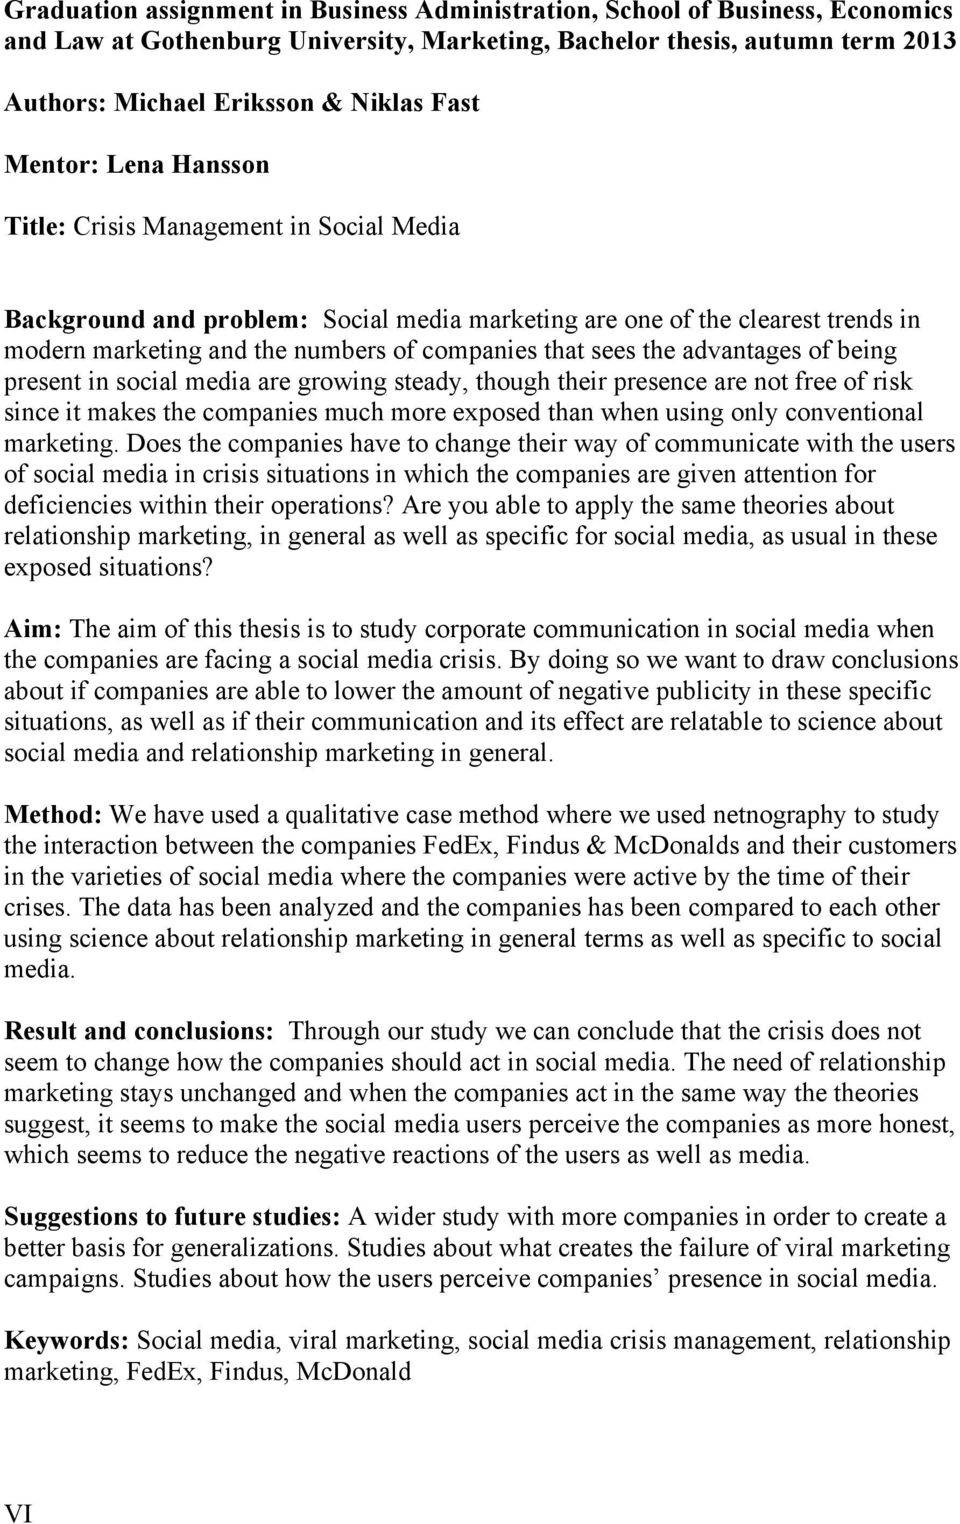 the advantages of being present in social media are growing steady, though their presence are not free of risk since it makes the companies much more exposed than when using only conventional